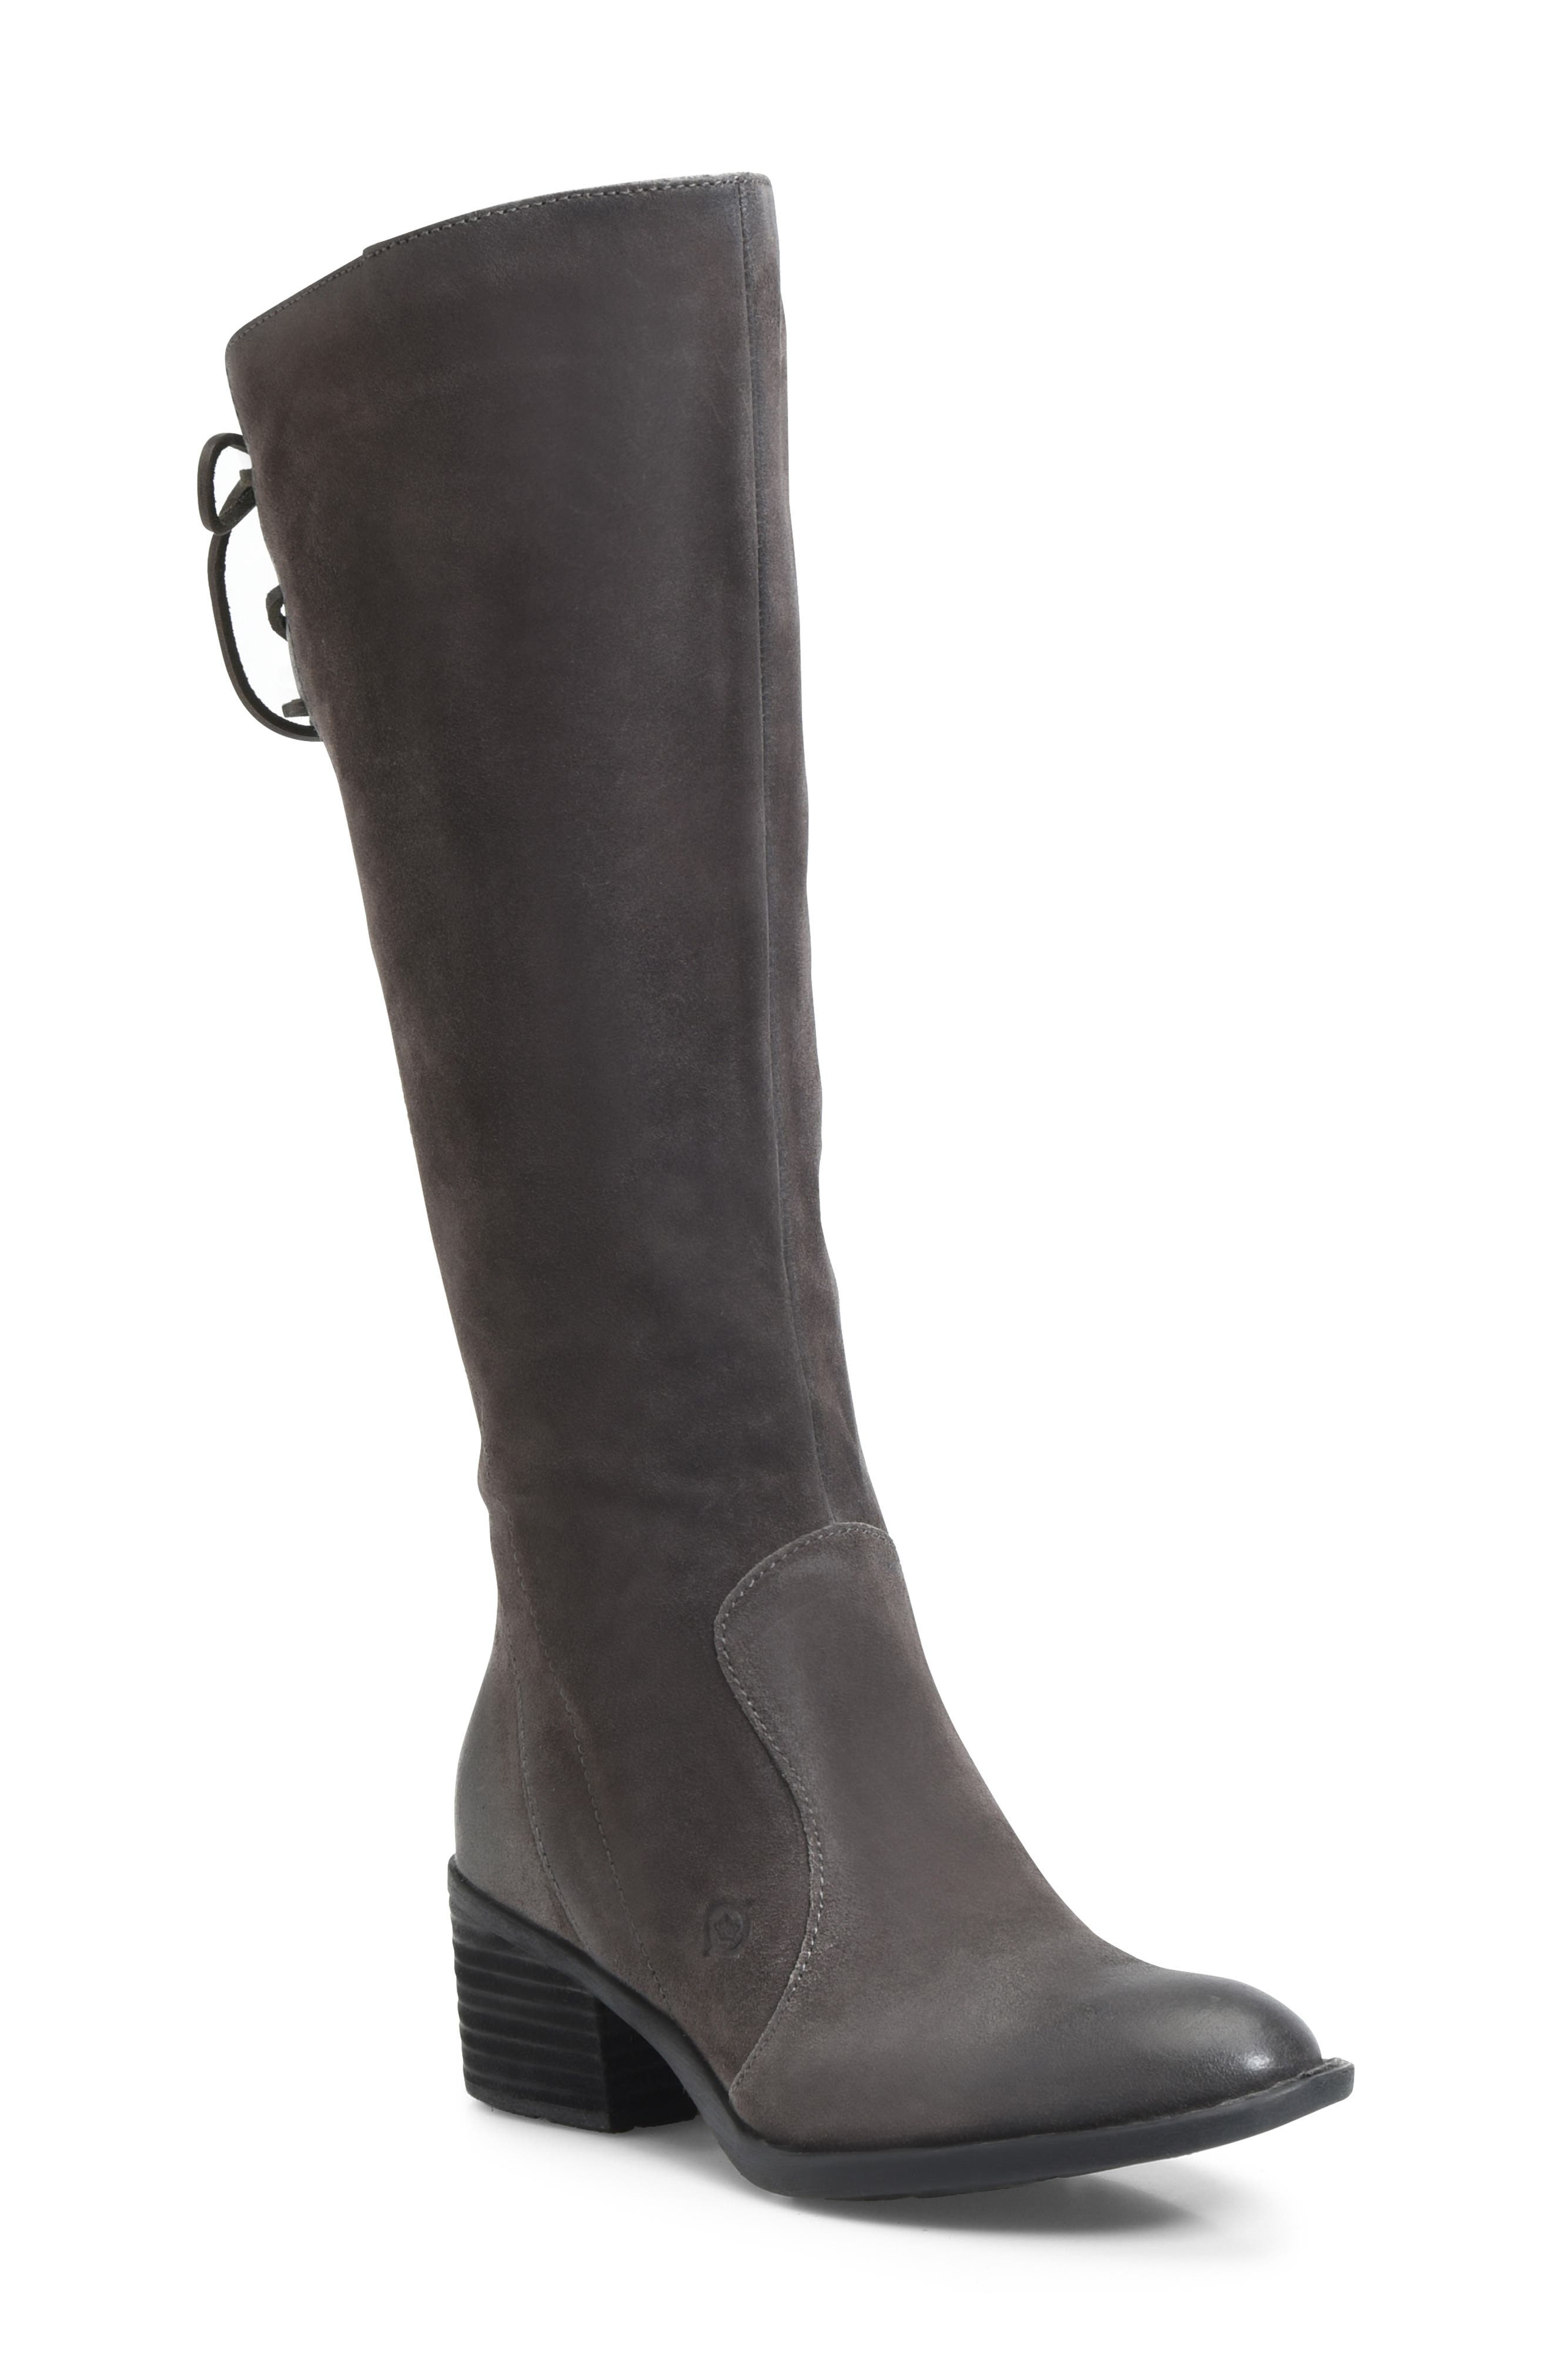 Felicia Knee High Boot,                             Main thumbnail 1, color,                             021